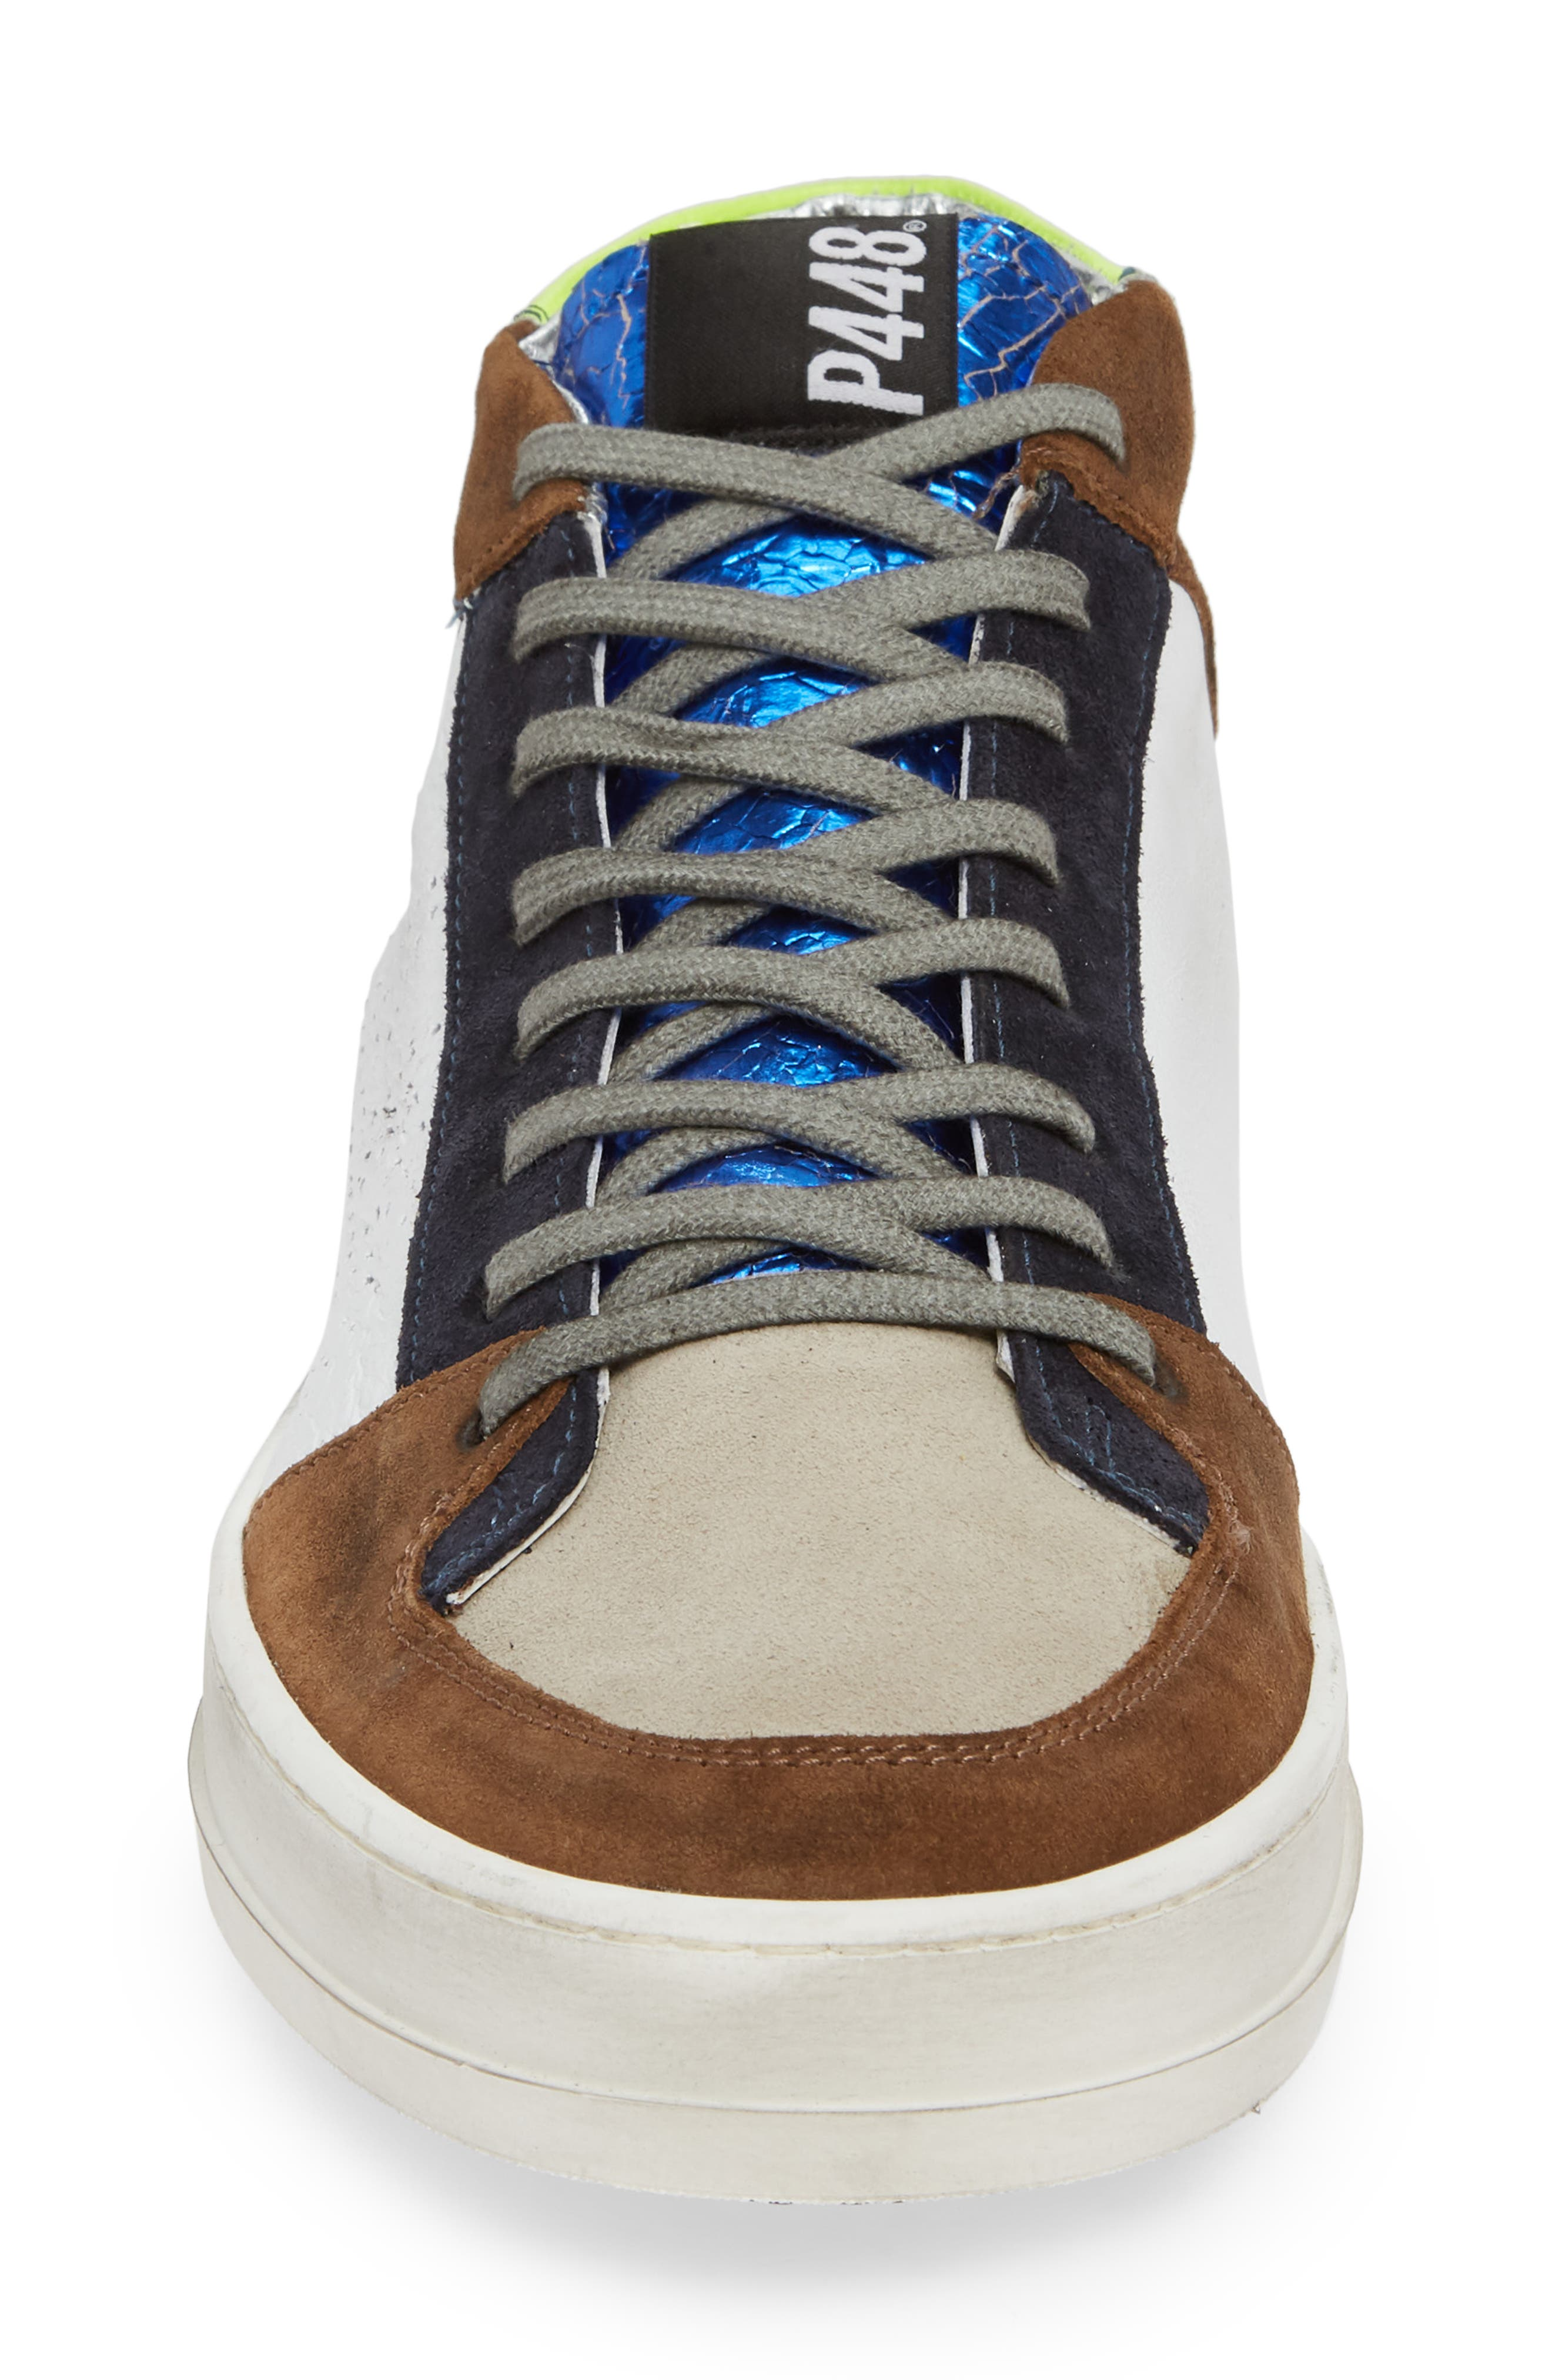 A8Queens Mid Top Sneaker,                             Alternate thumbnail 4, color,                             YELLOW